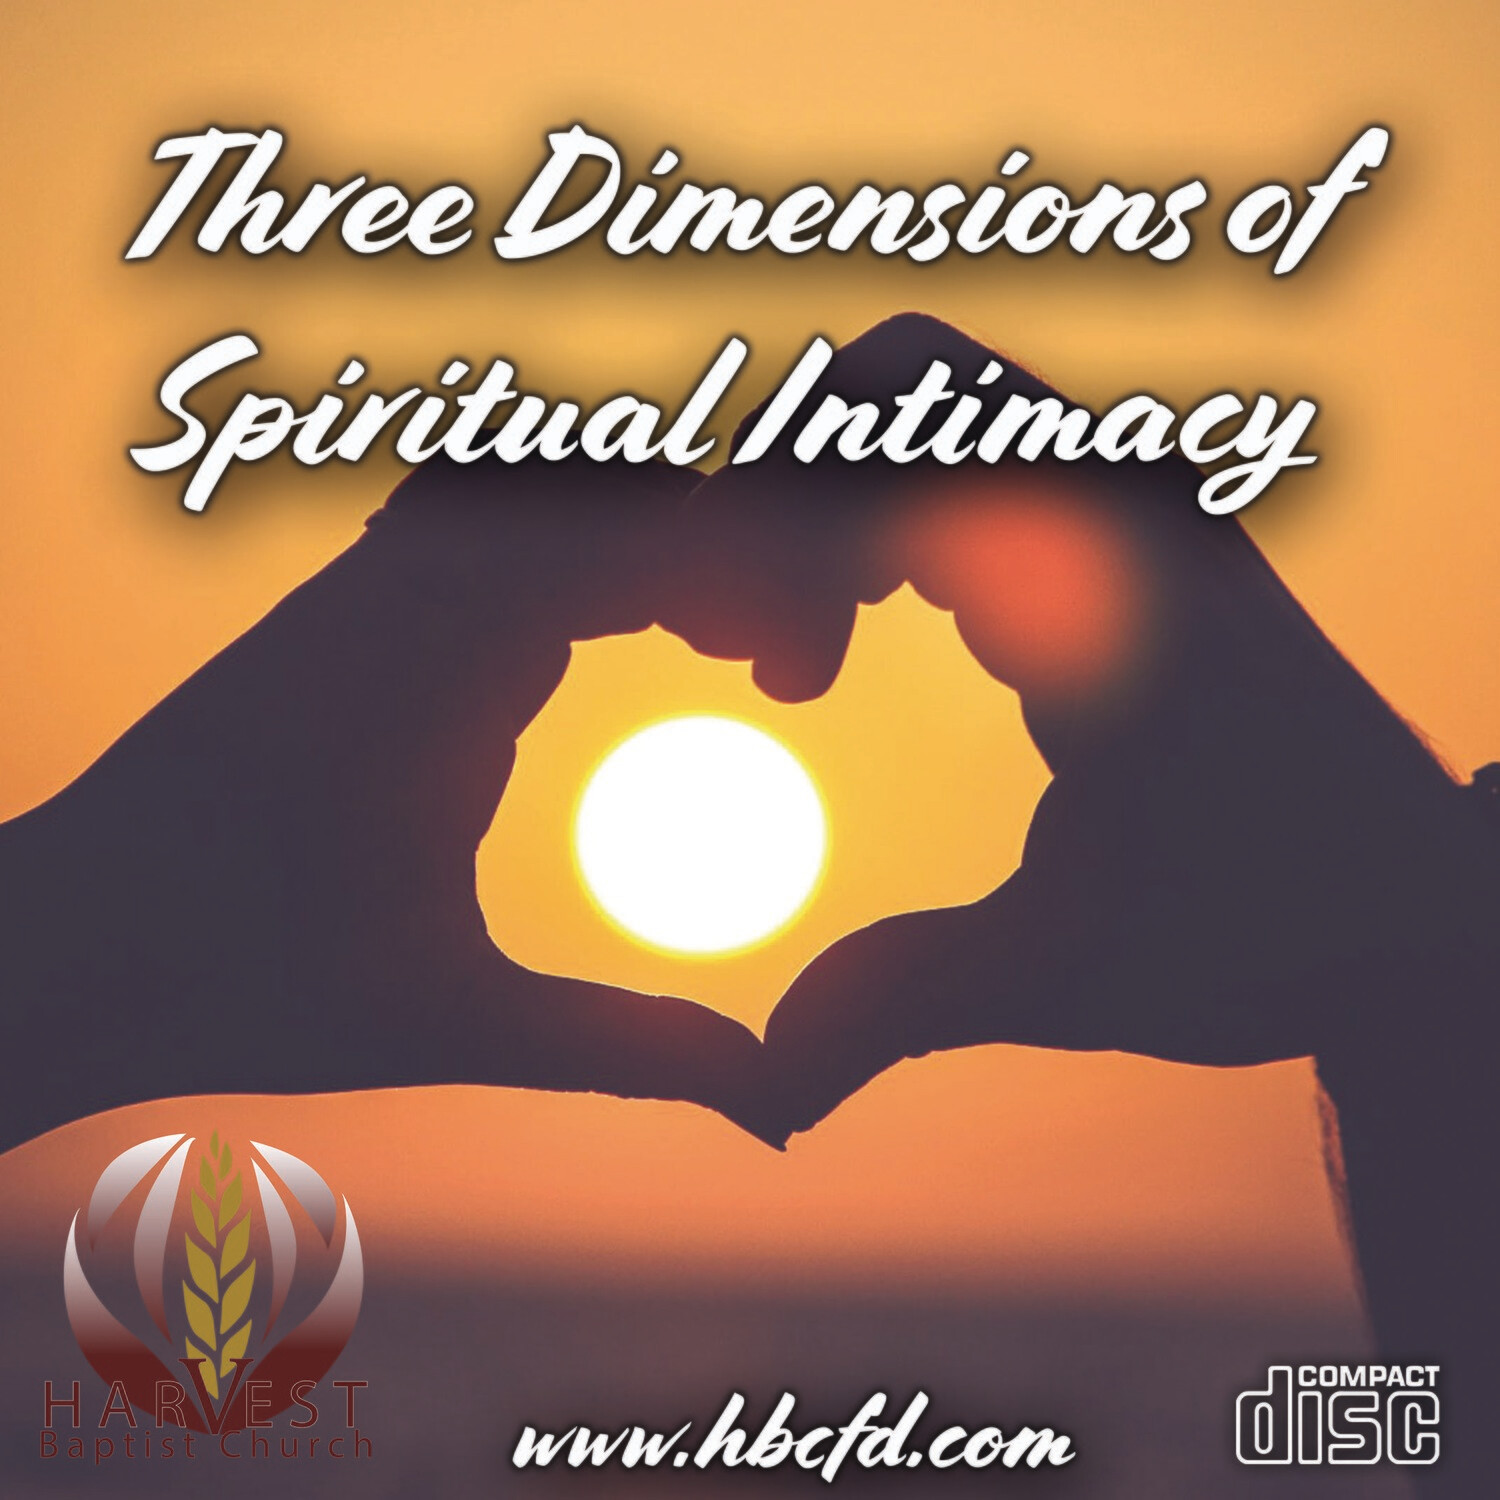 Three Dimensions of Spiritual Intimacy